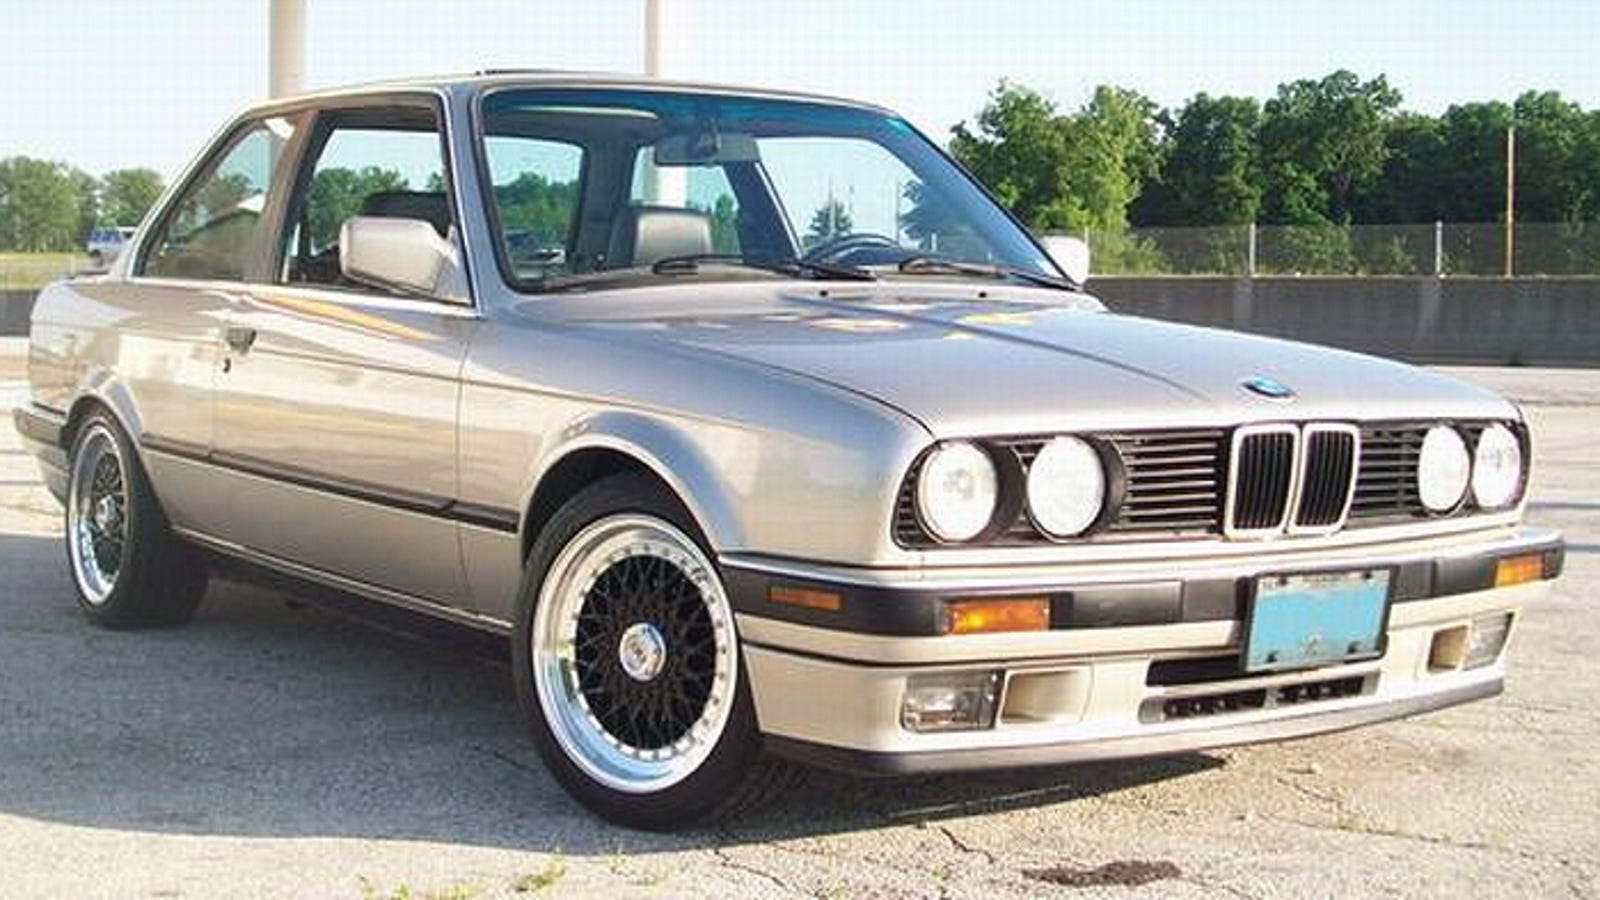 How About A 1989 BMW 325i Daily Driver For $3,500?